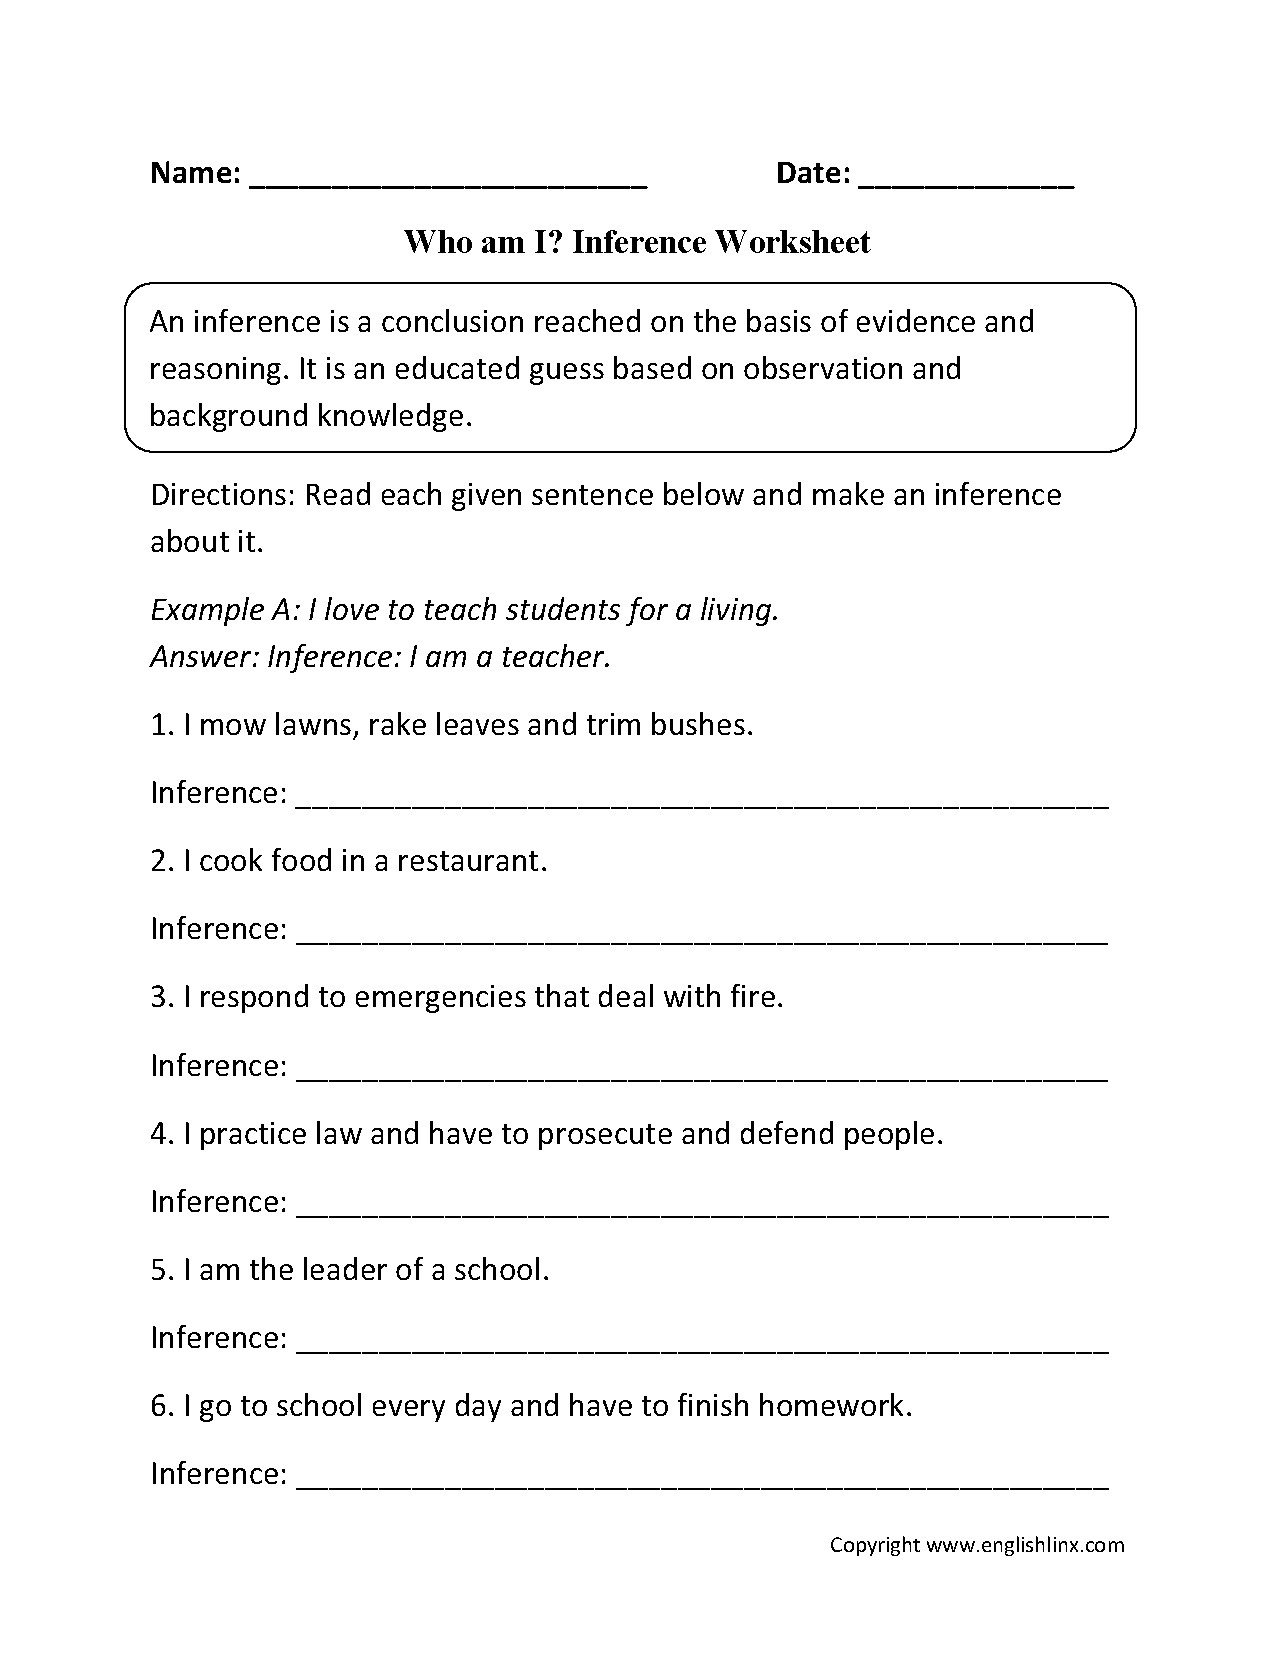 Drawing Conclusion Worksheets 3rd Grade New Inferences Worksheet High School